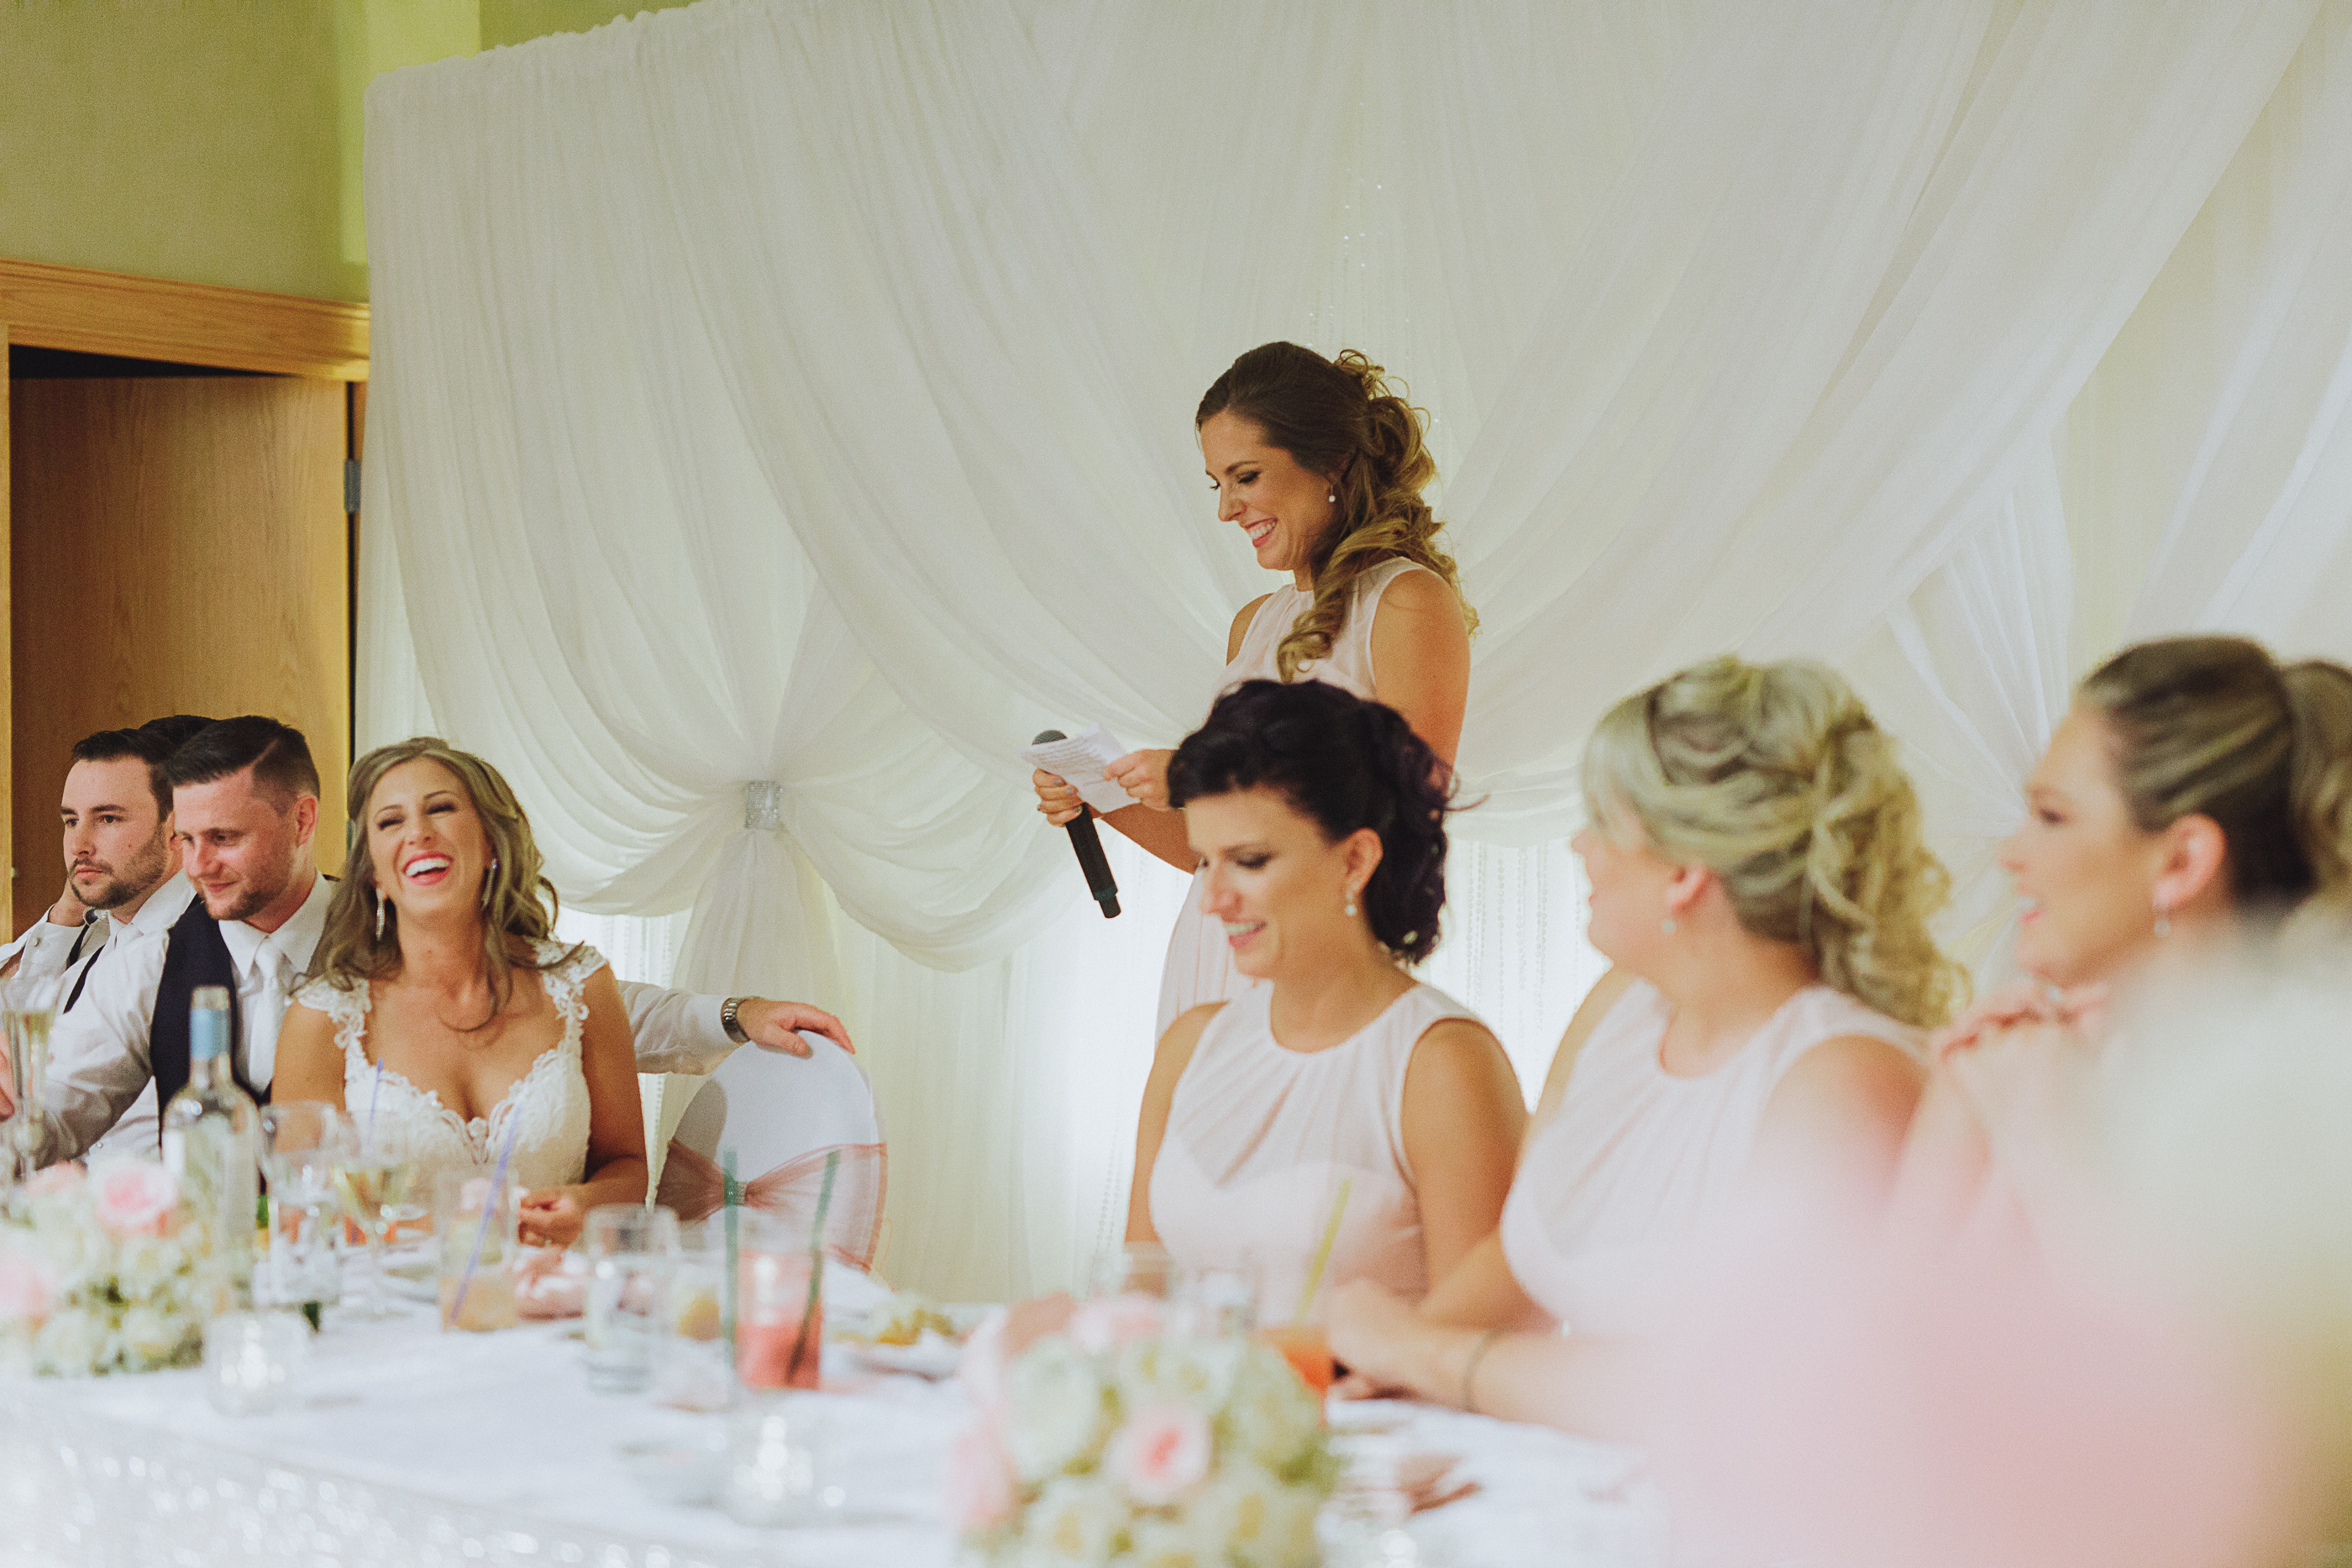 Moments like this - maid of honour speech